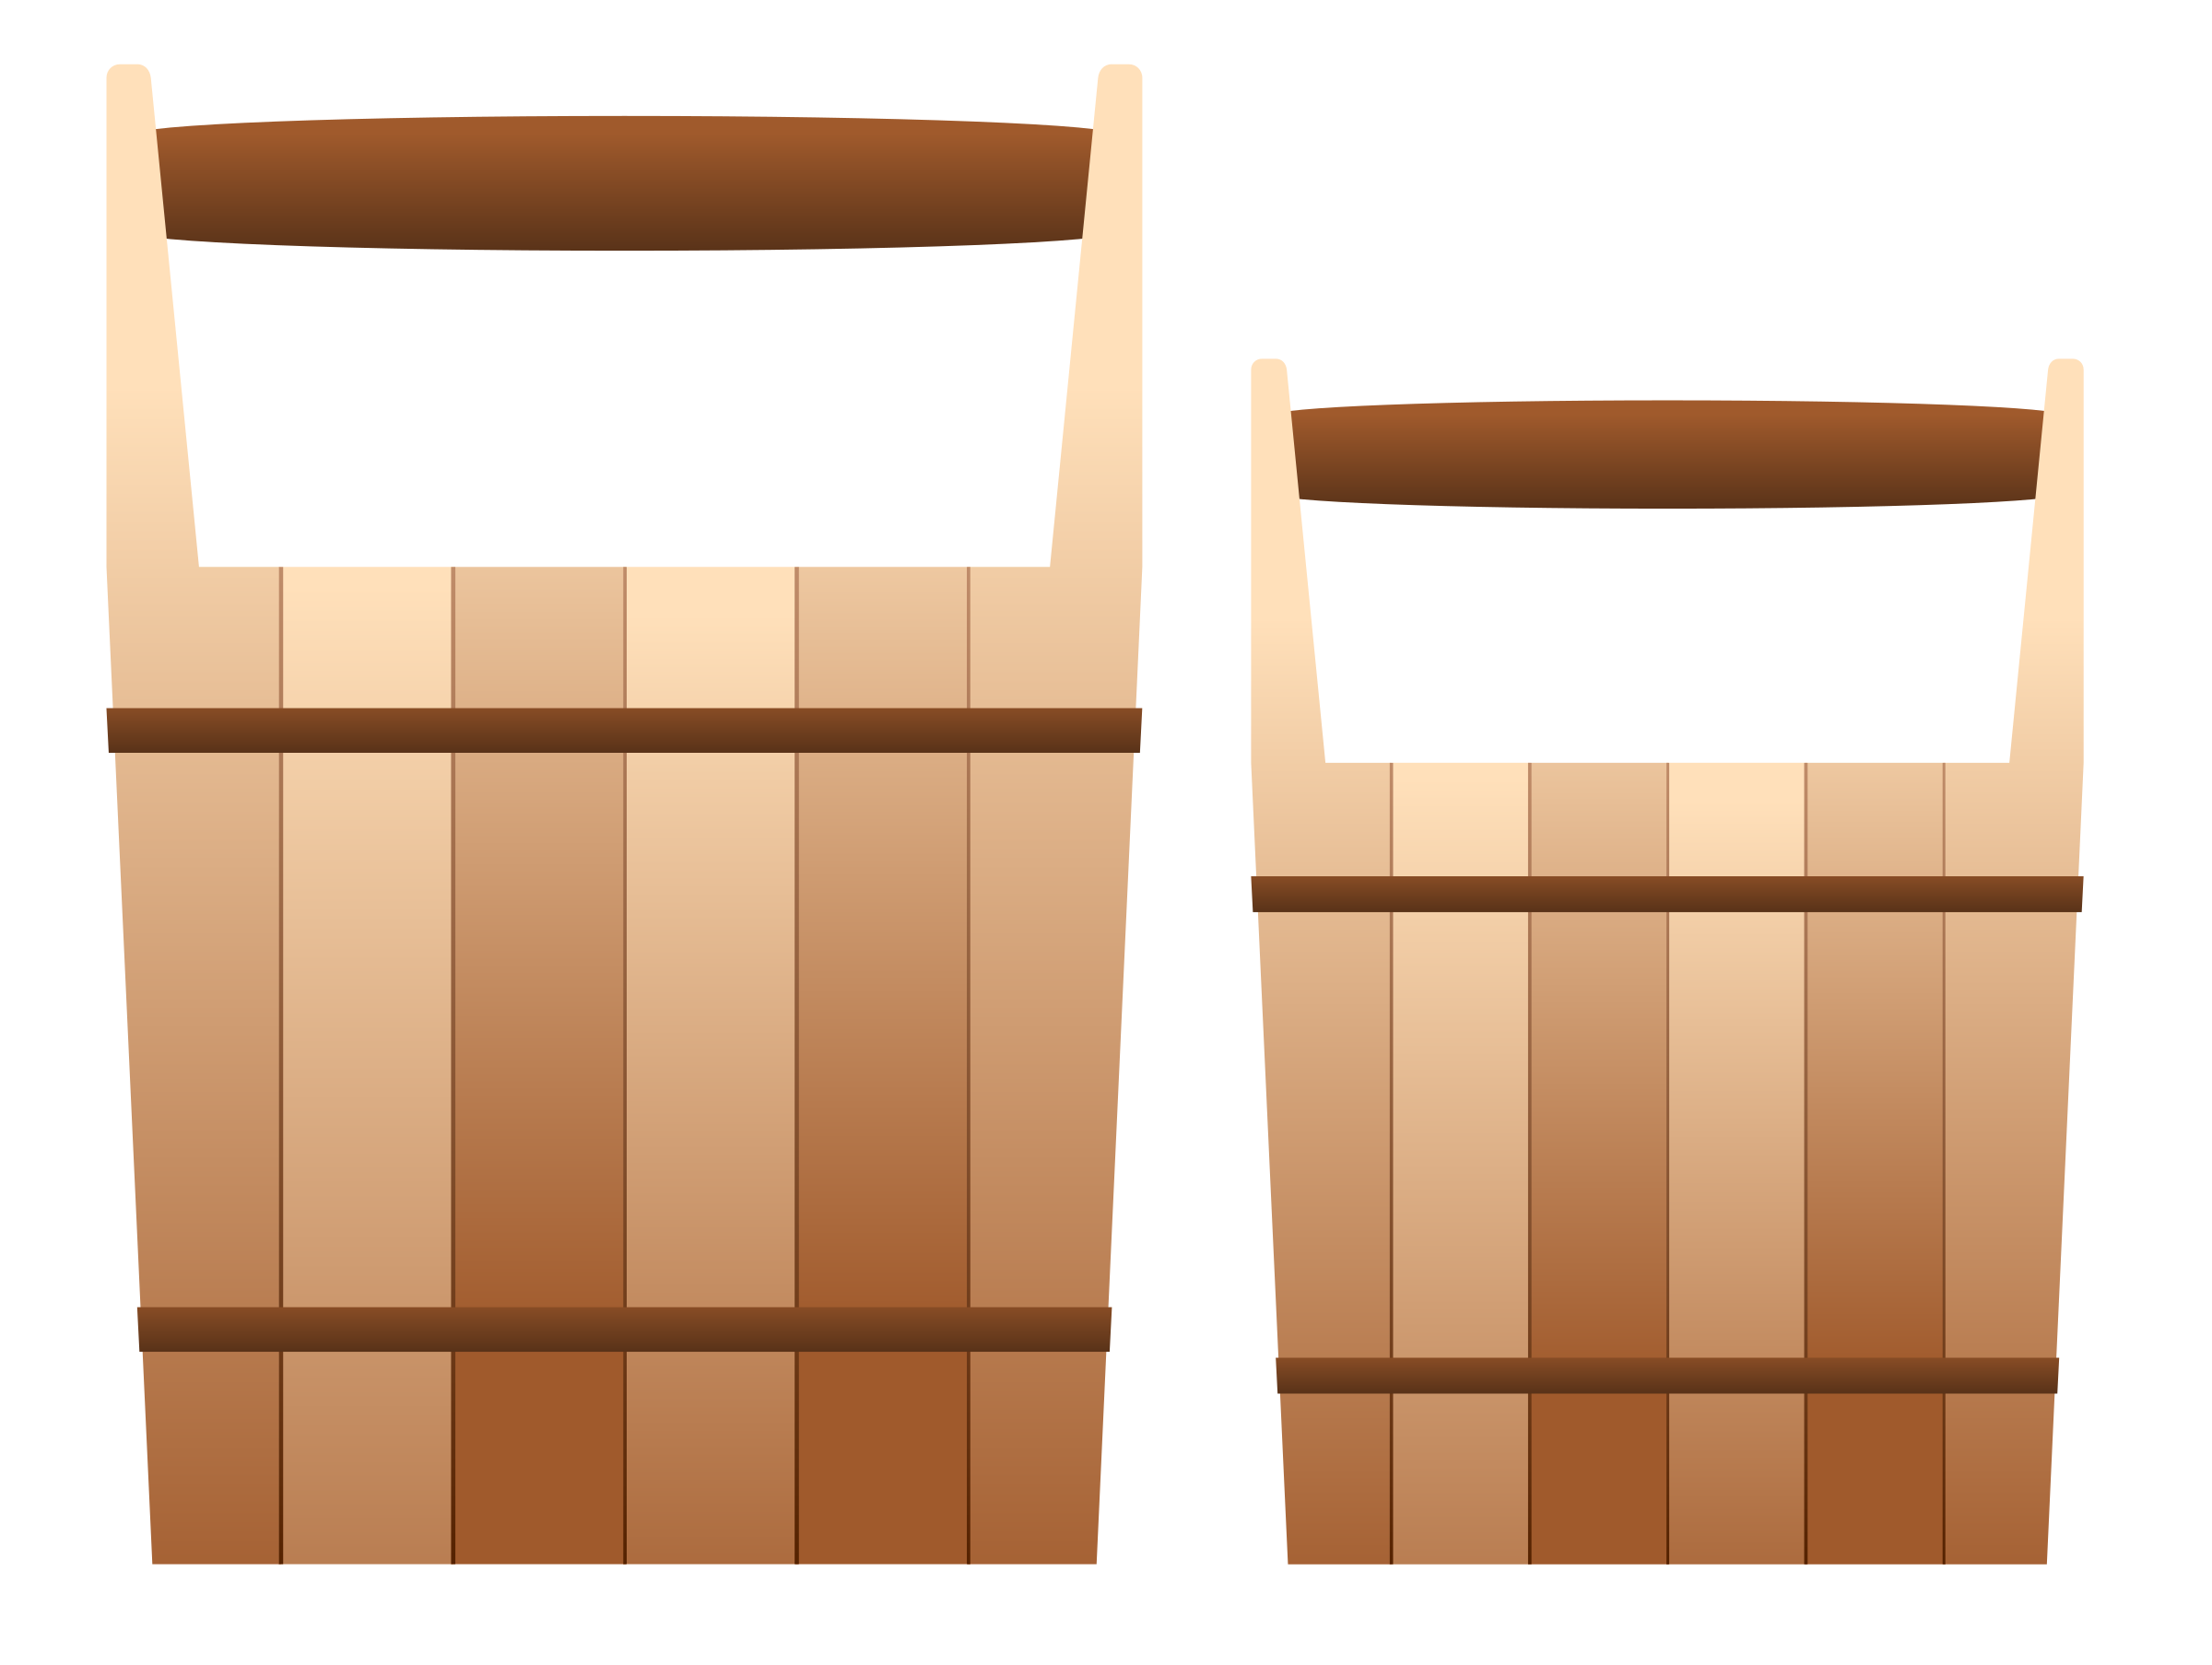 Wooden Pails by Viscious-Speed